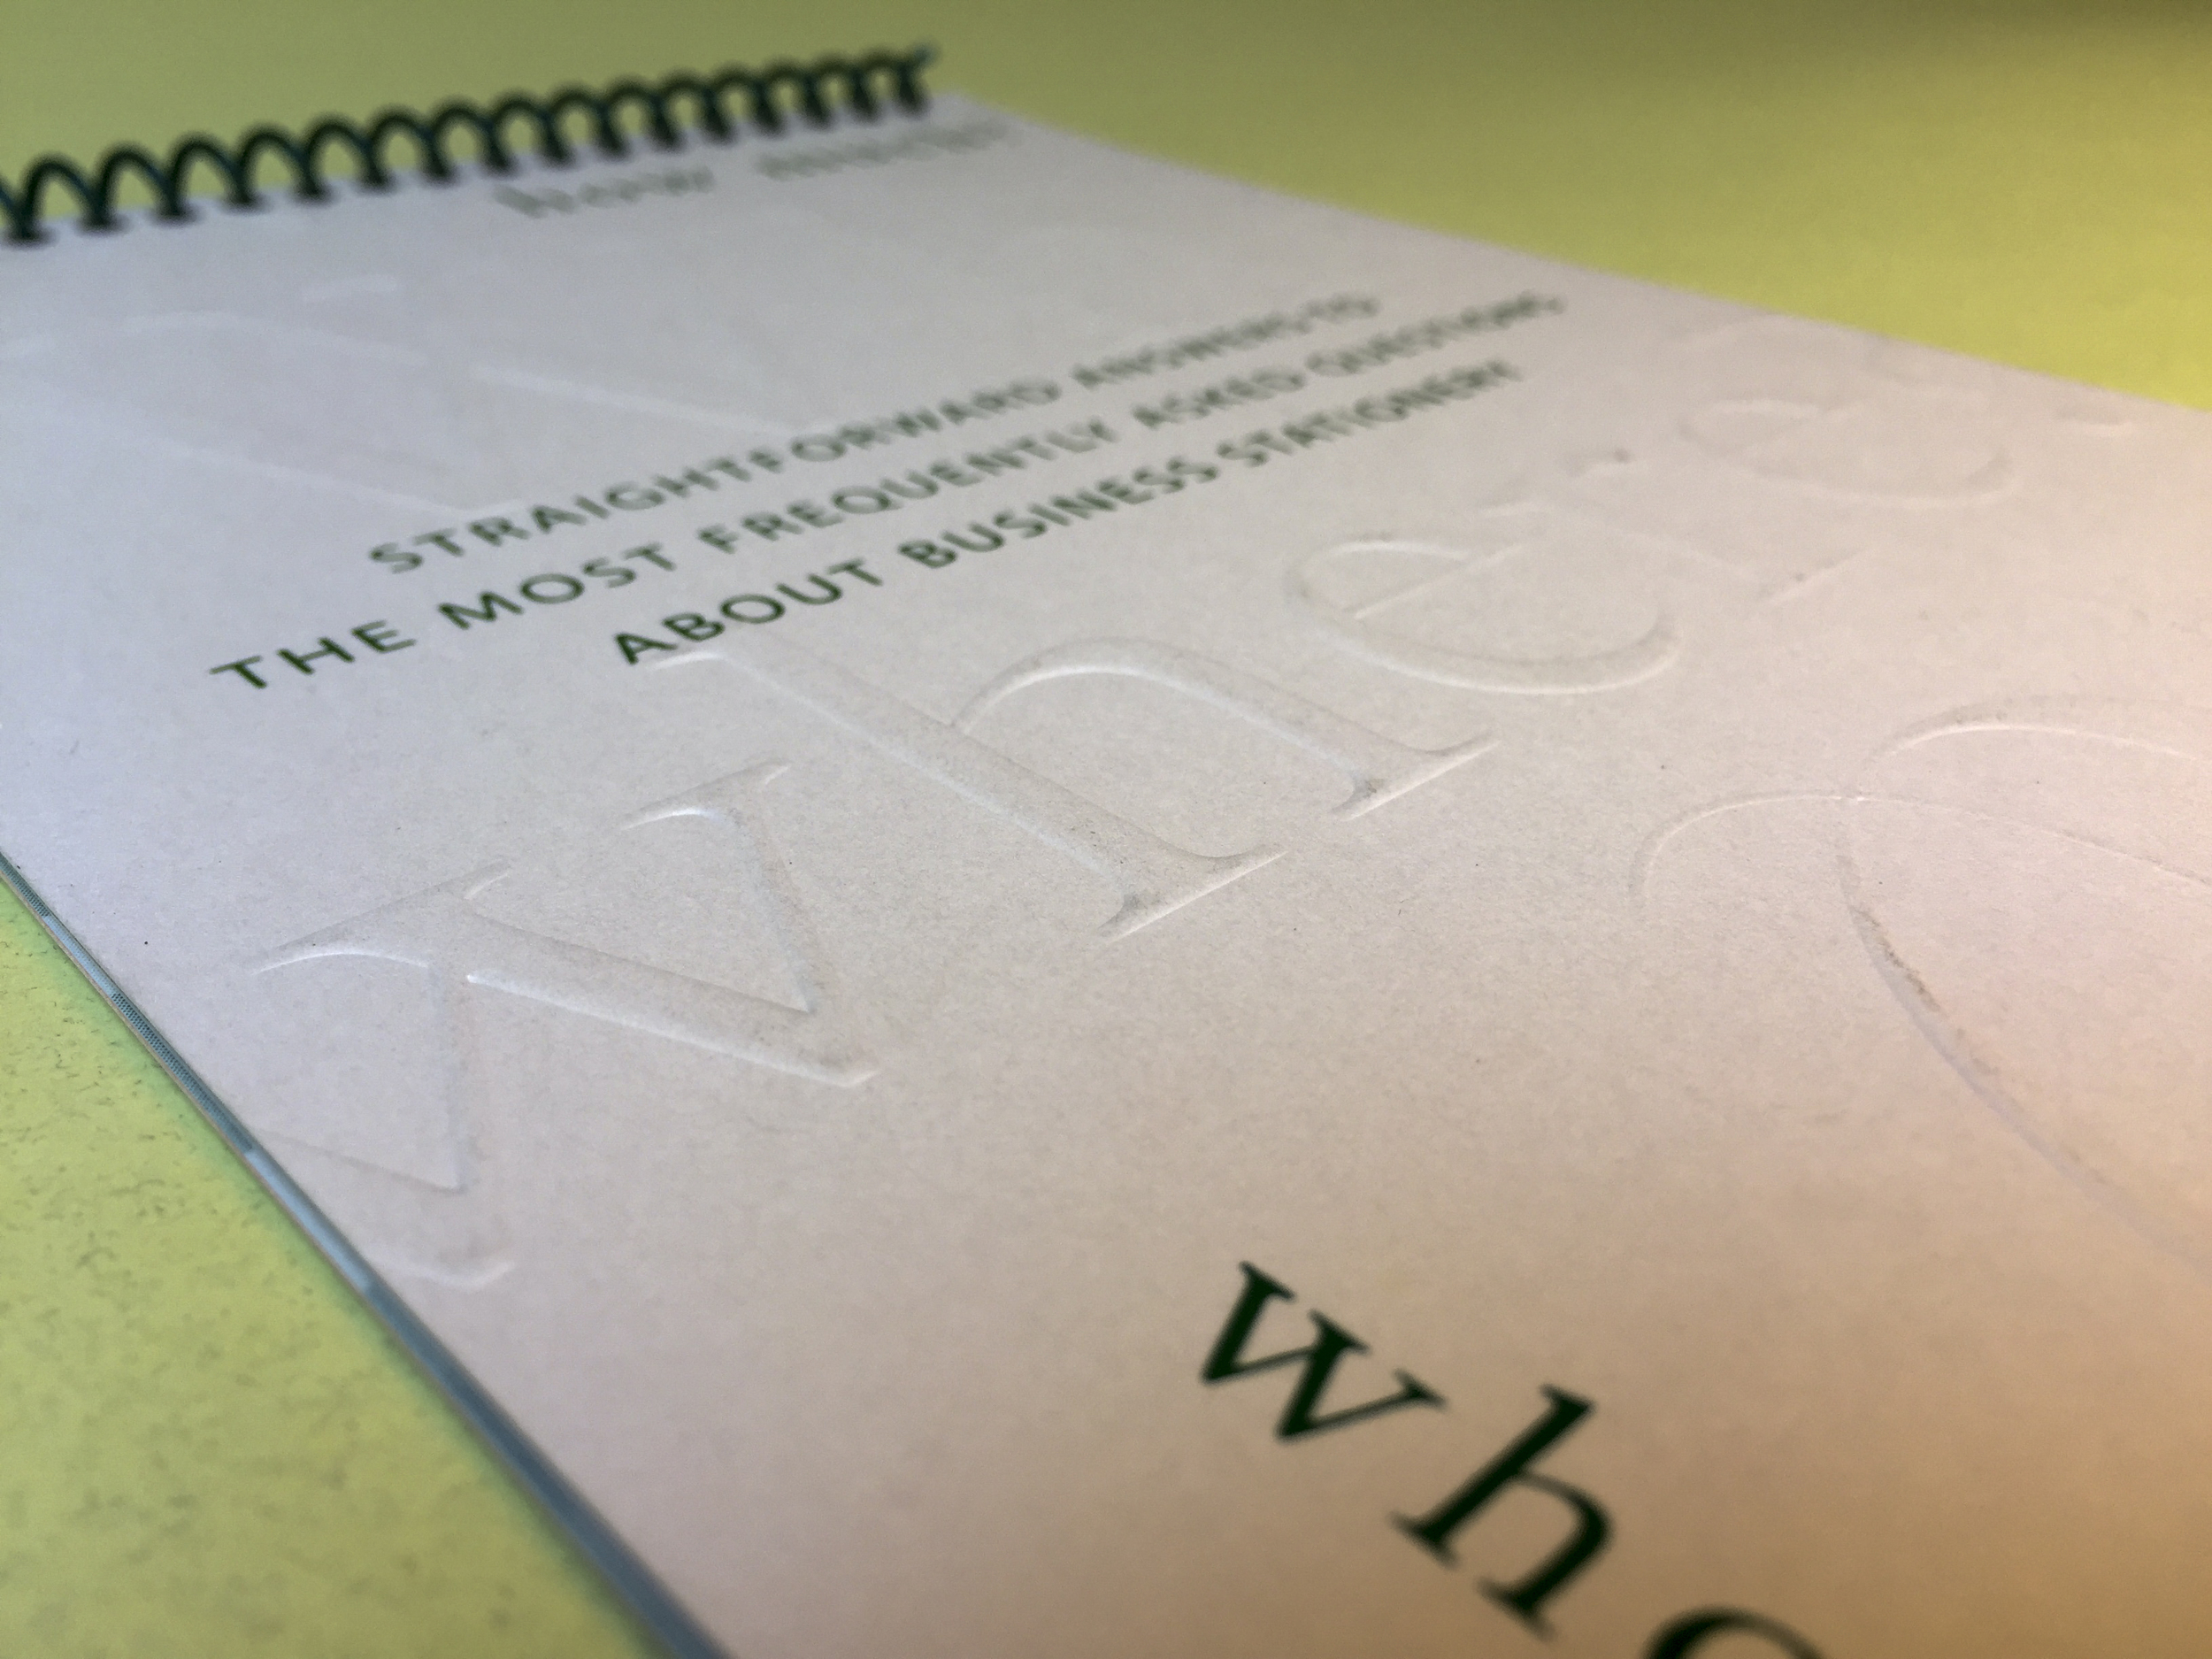 Saint Claire's Stationers: Printing brochure emboss, green foil detail